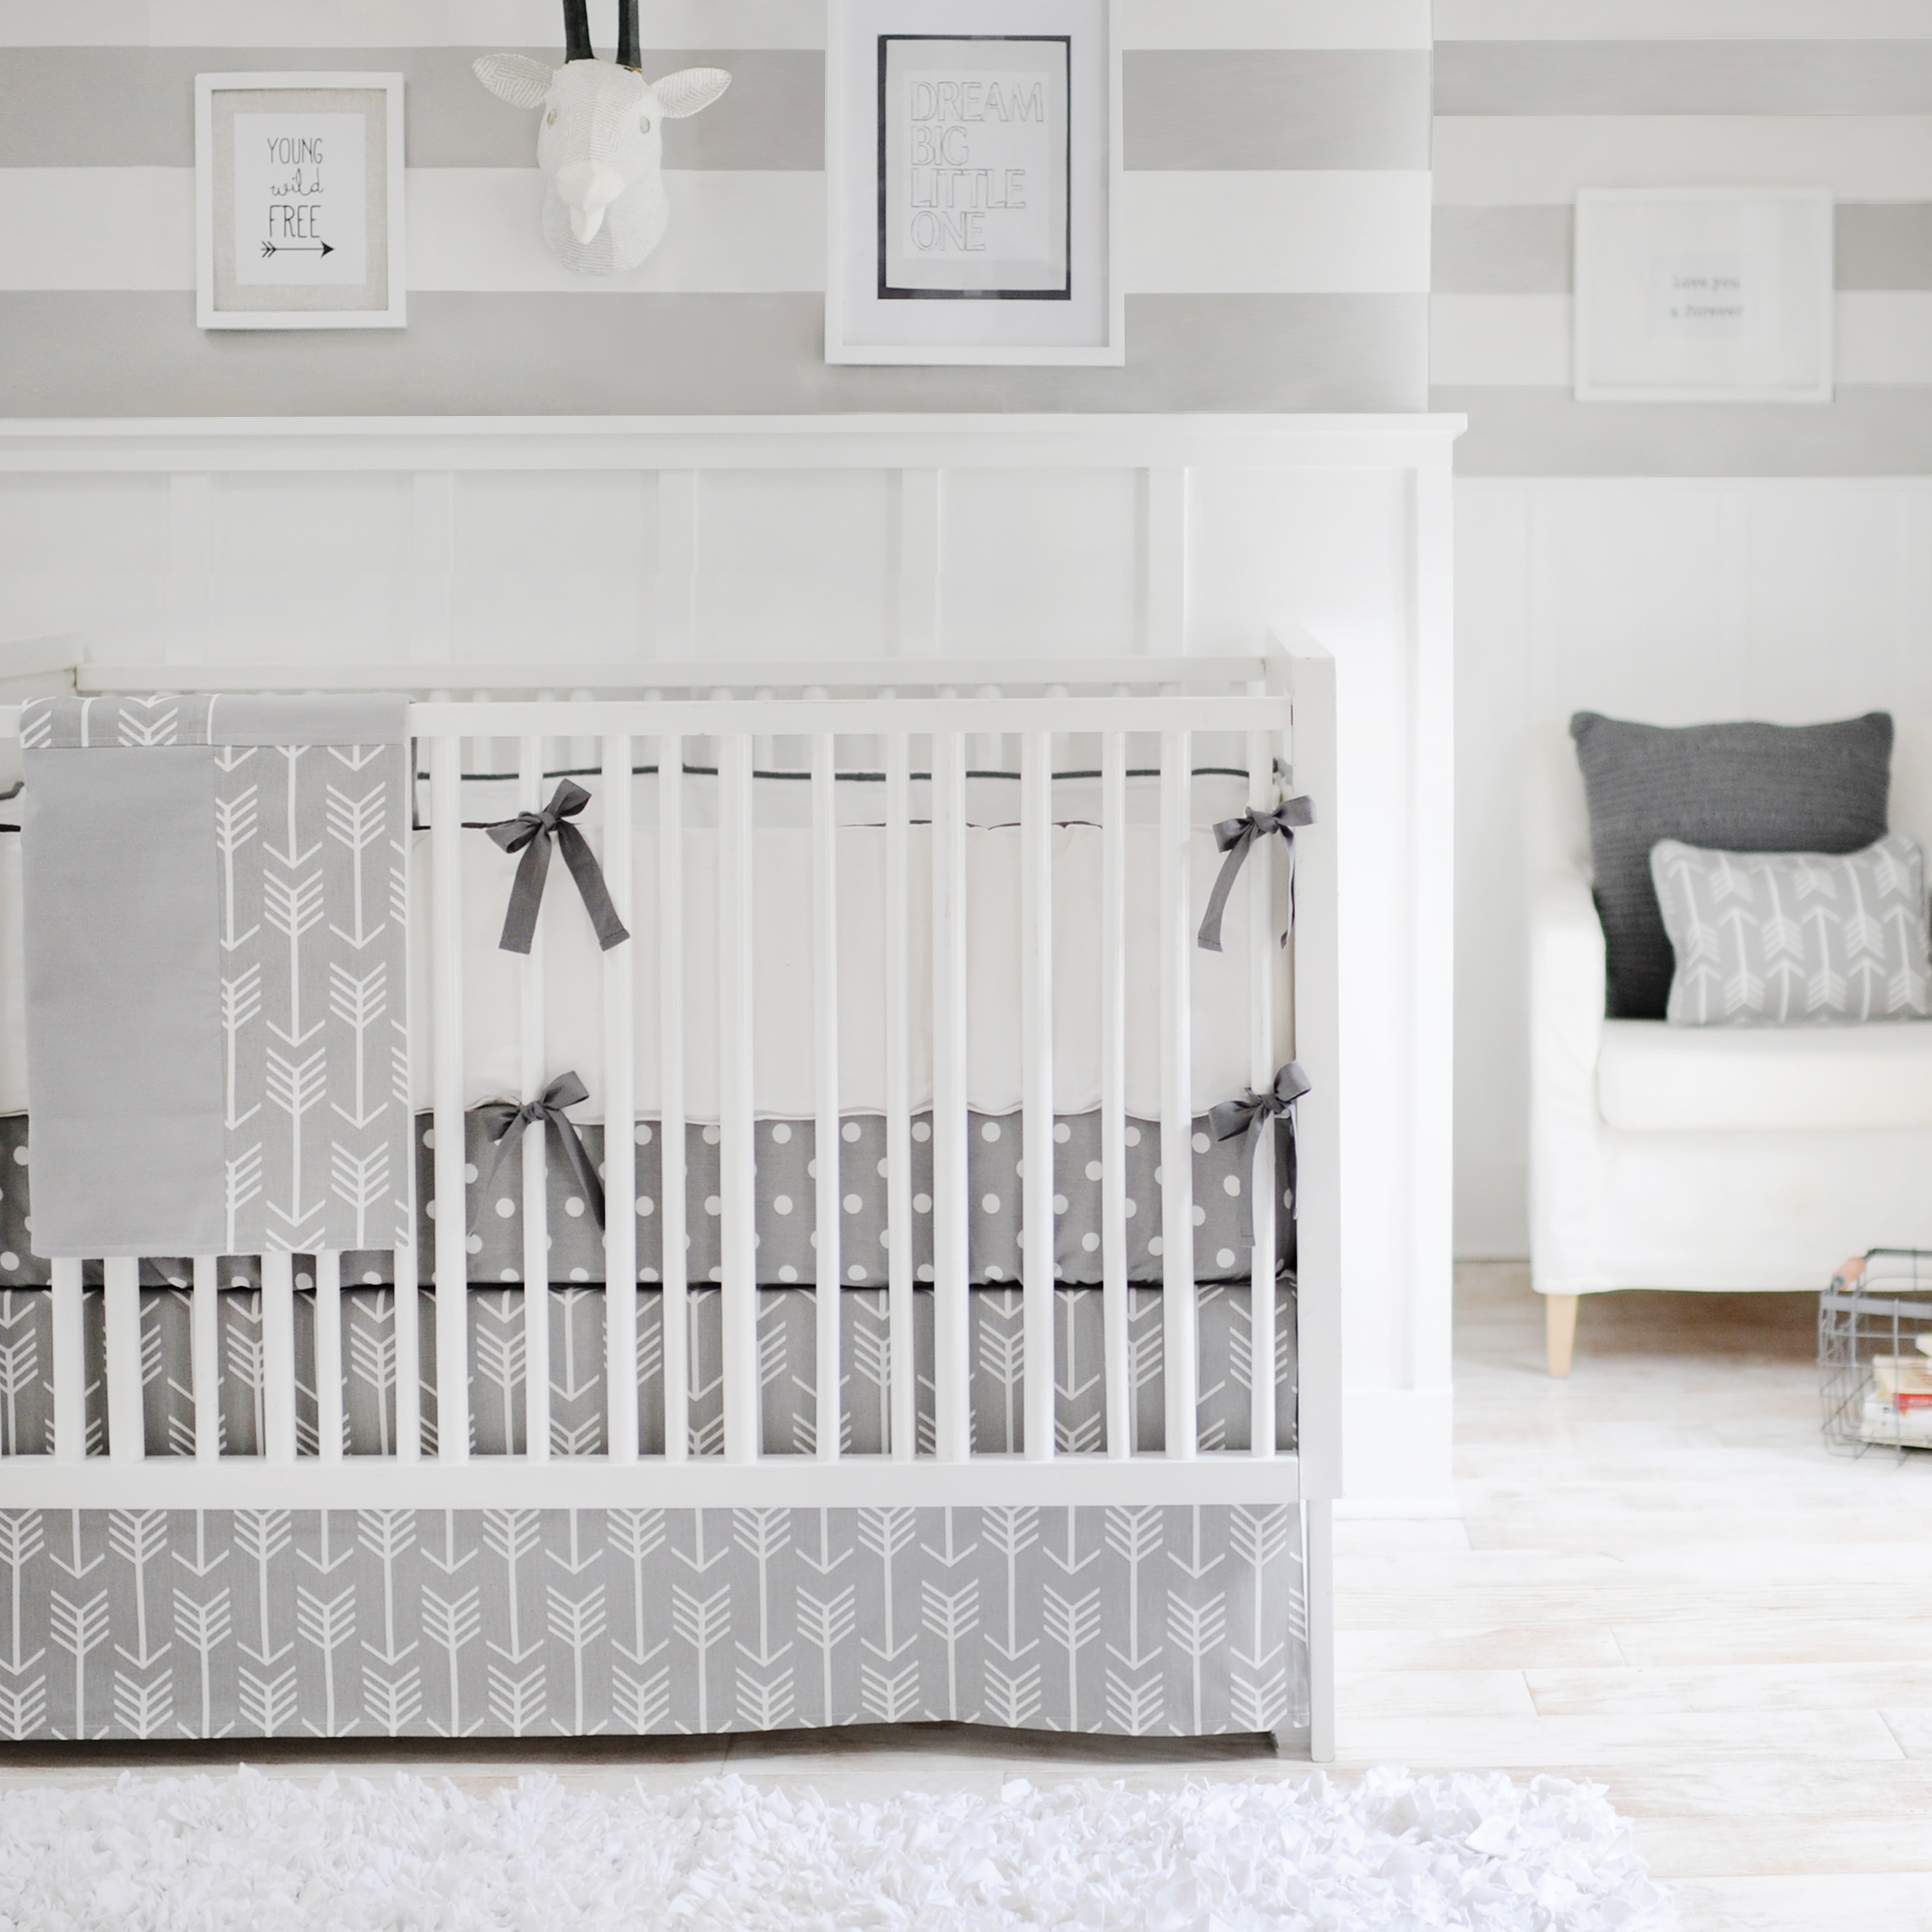 A Simple Crib And Striped Sheet Makes This Nursery Neutral